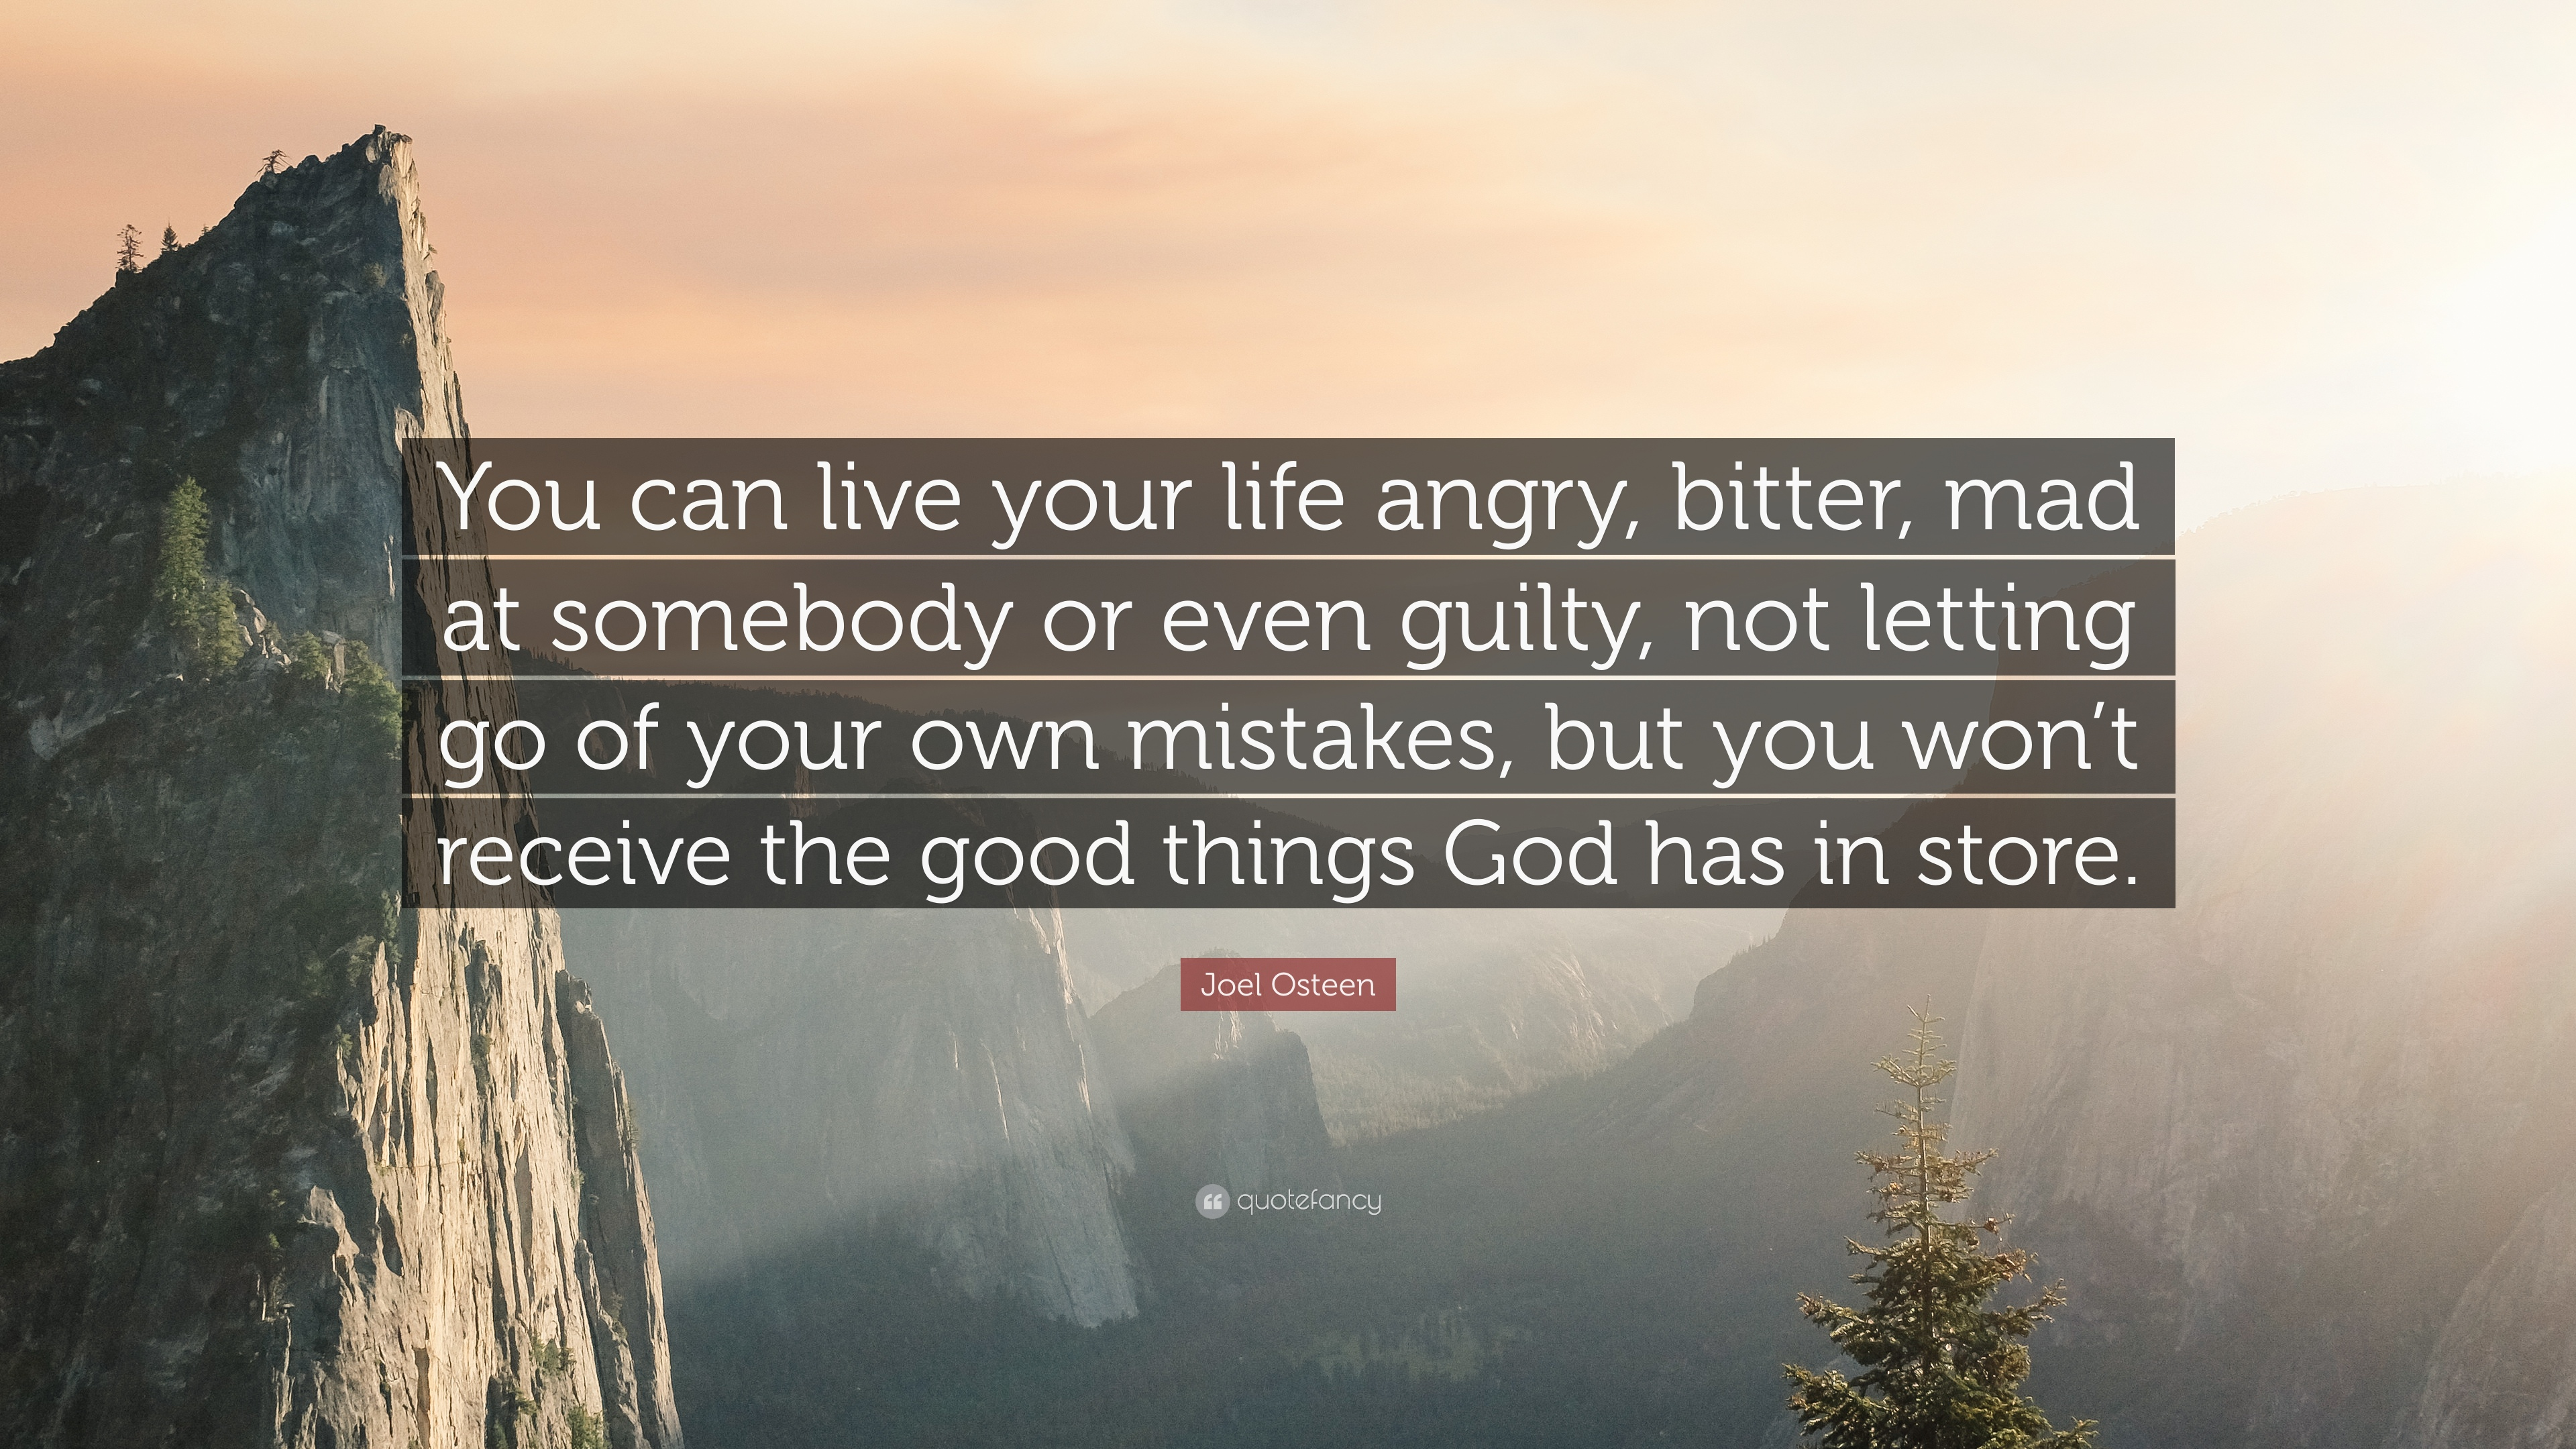 Joel Osteen Quote: U201cYou Can Live Your Life Angry, Bitter, Mad At